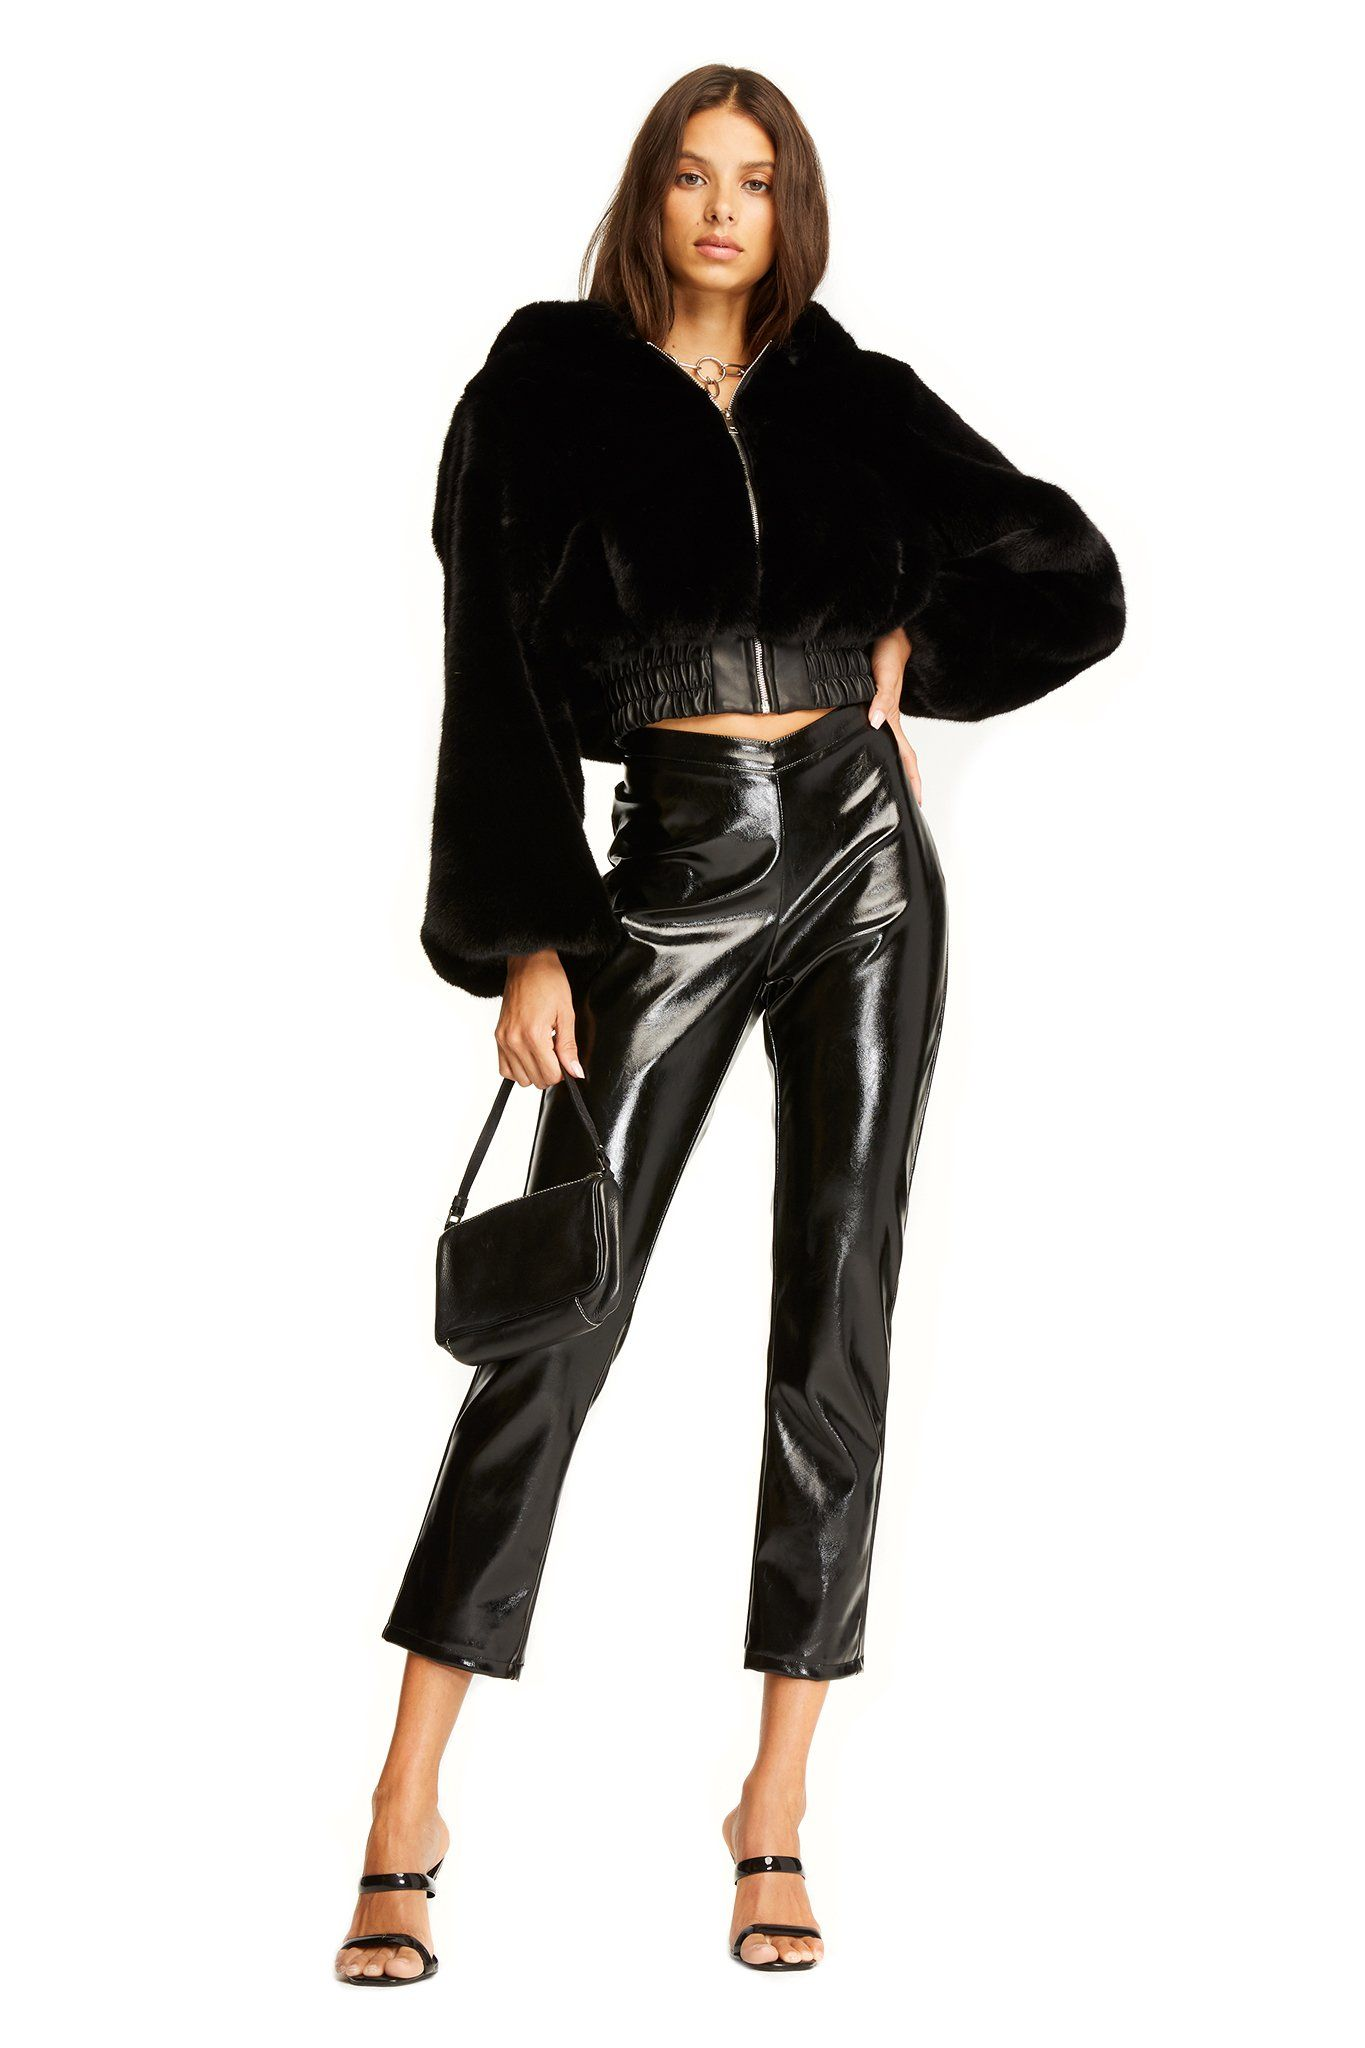 Shop Outerwear I.AM.GIA Free express shipping on US